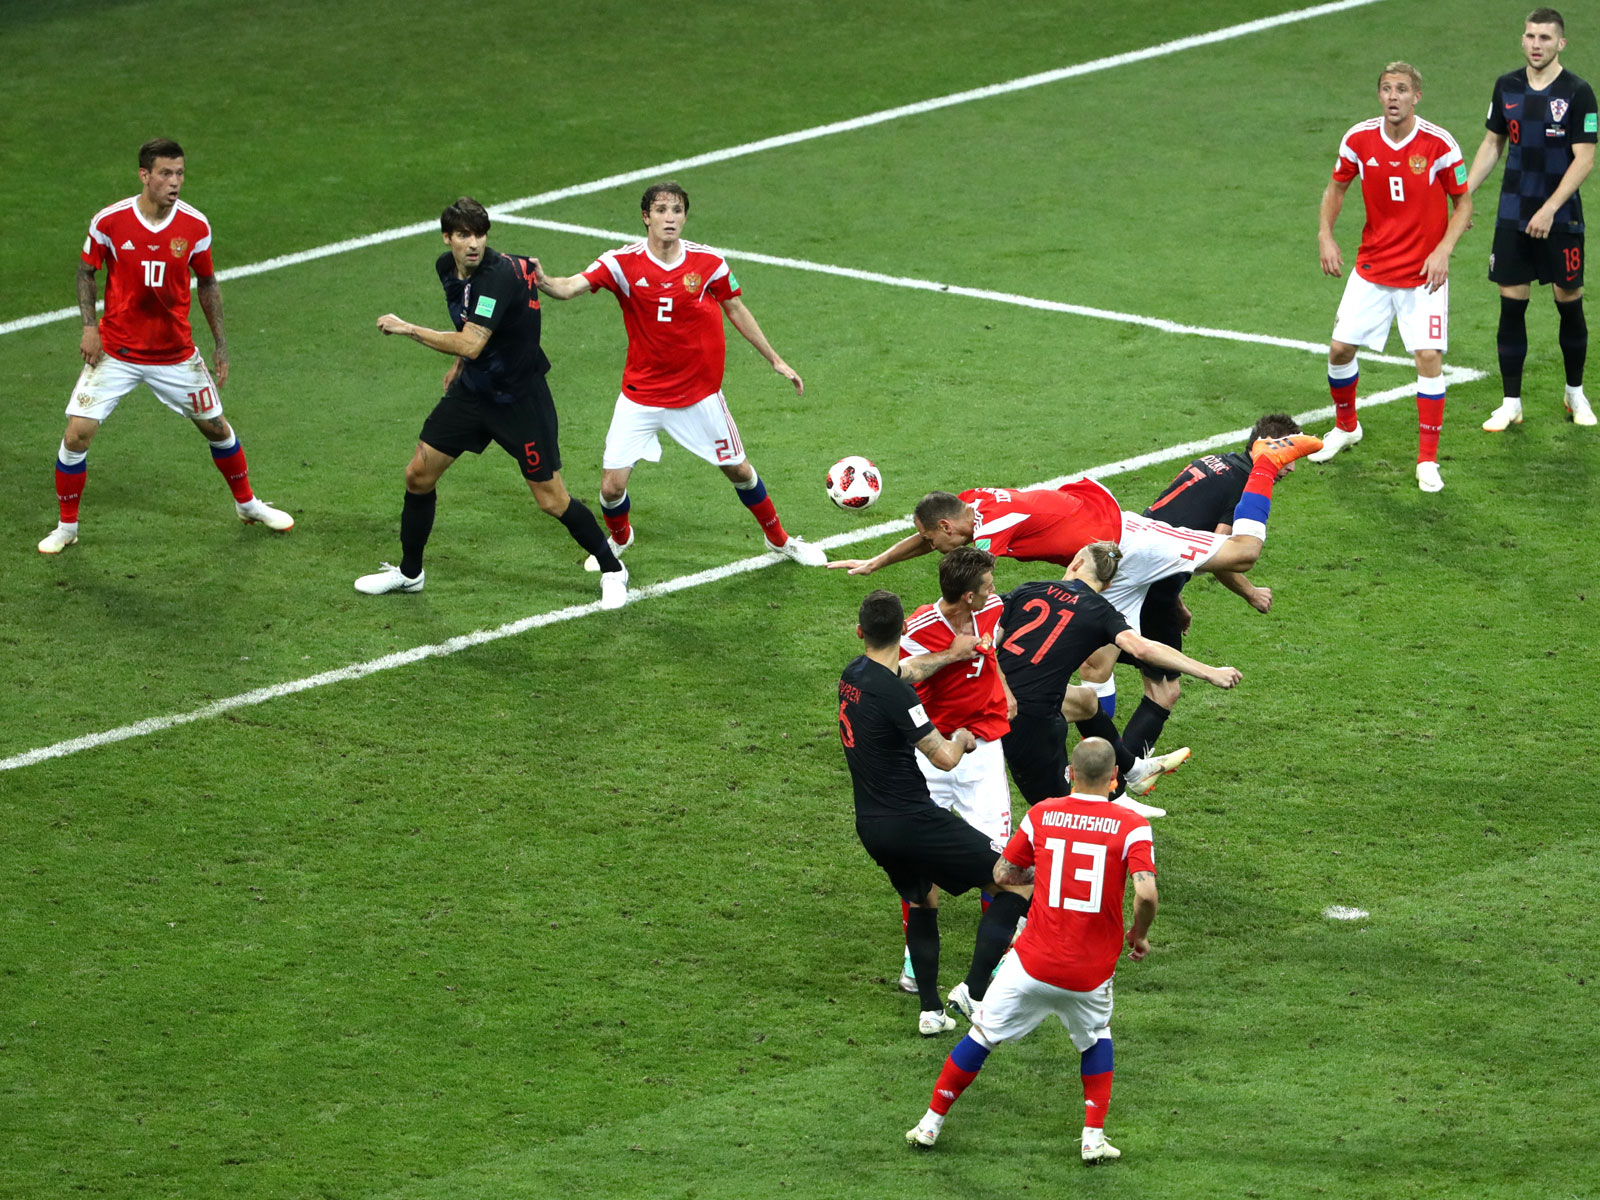 Domagoj Vida scores for Croatia in extra time against Russia in the World Cup quarterfinals